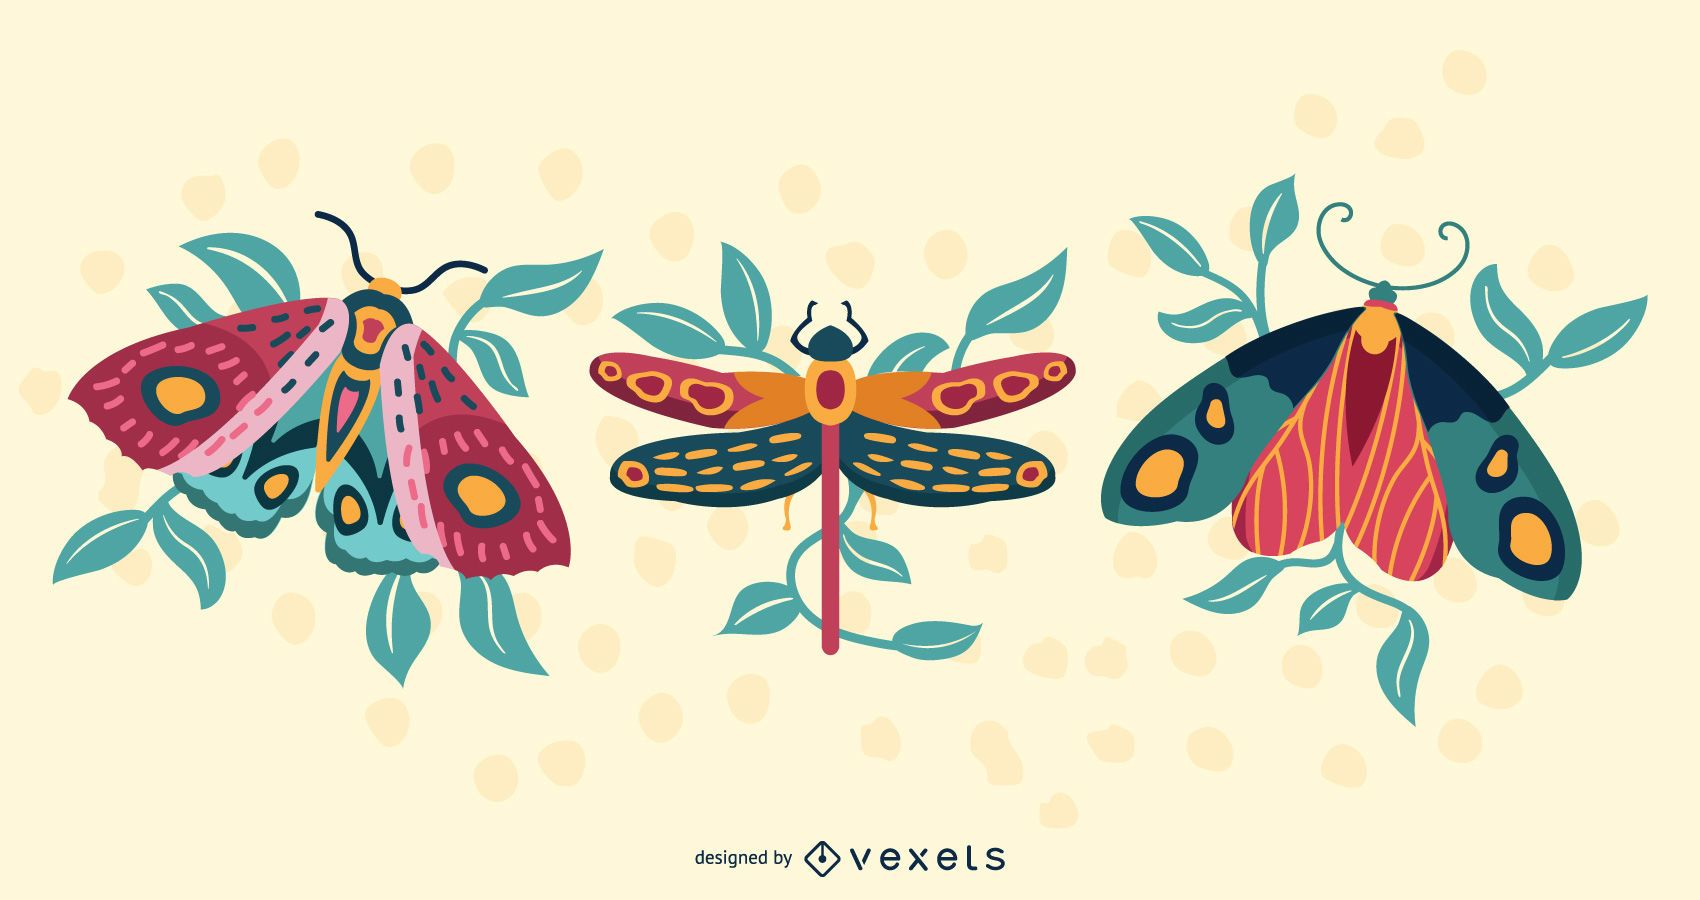 Artistic Insects Illustration